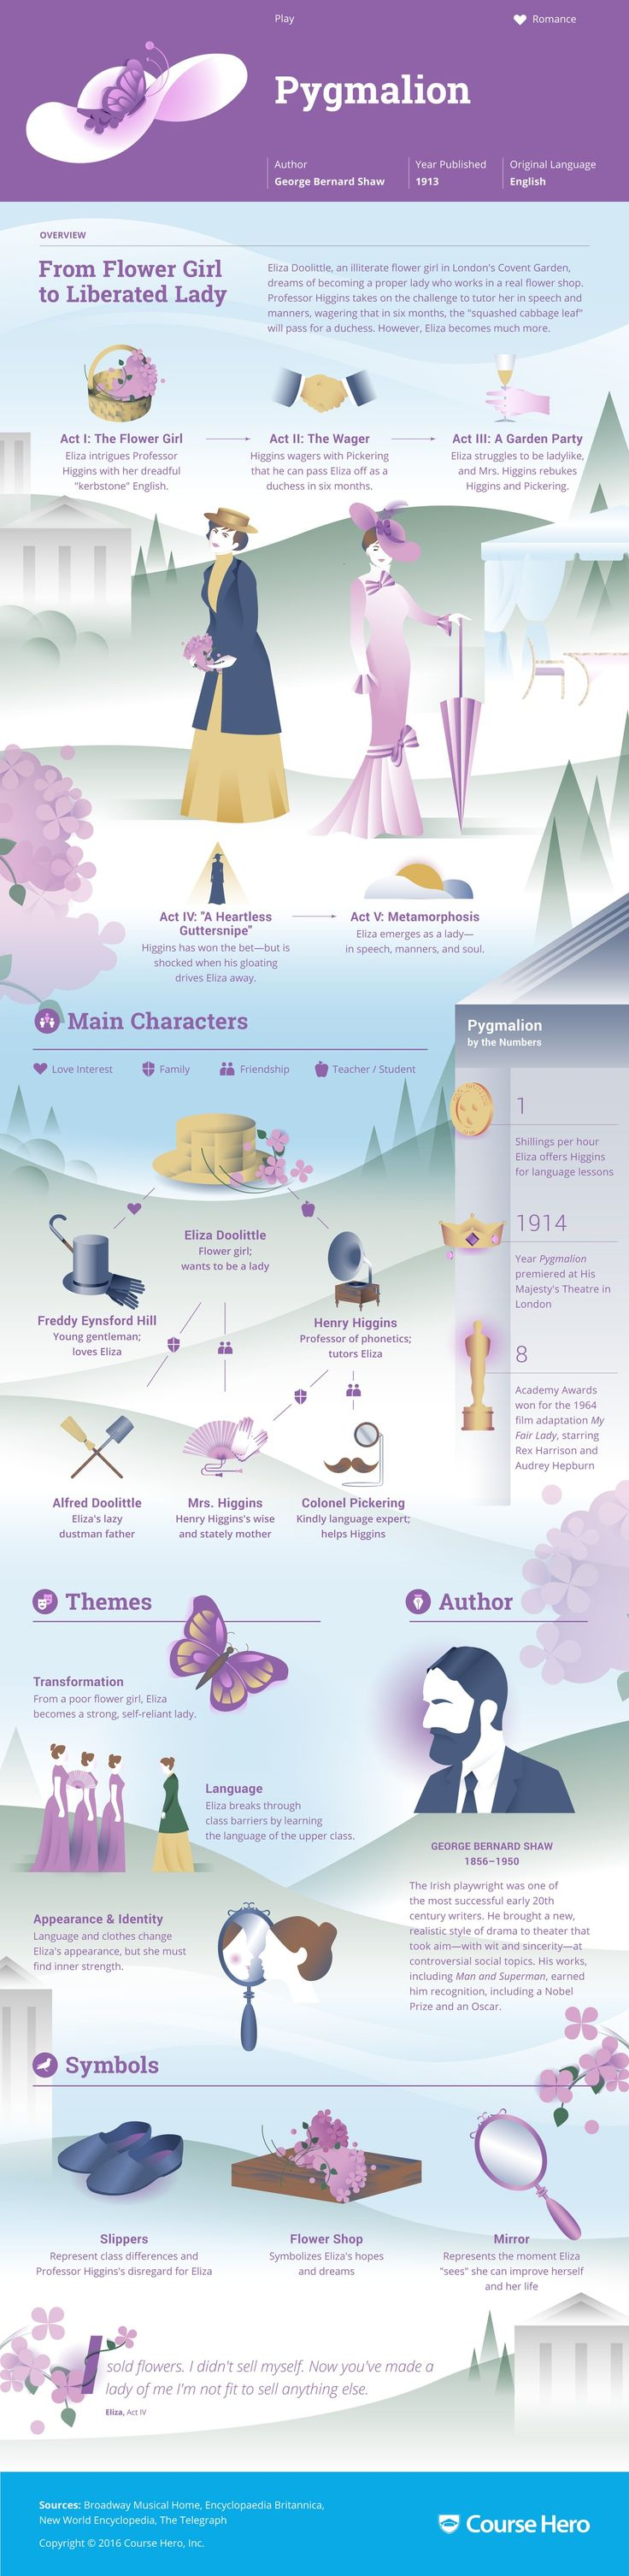 Pygmalion Infographic | Course Hero                              …